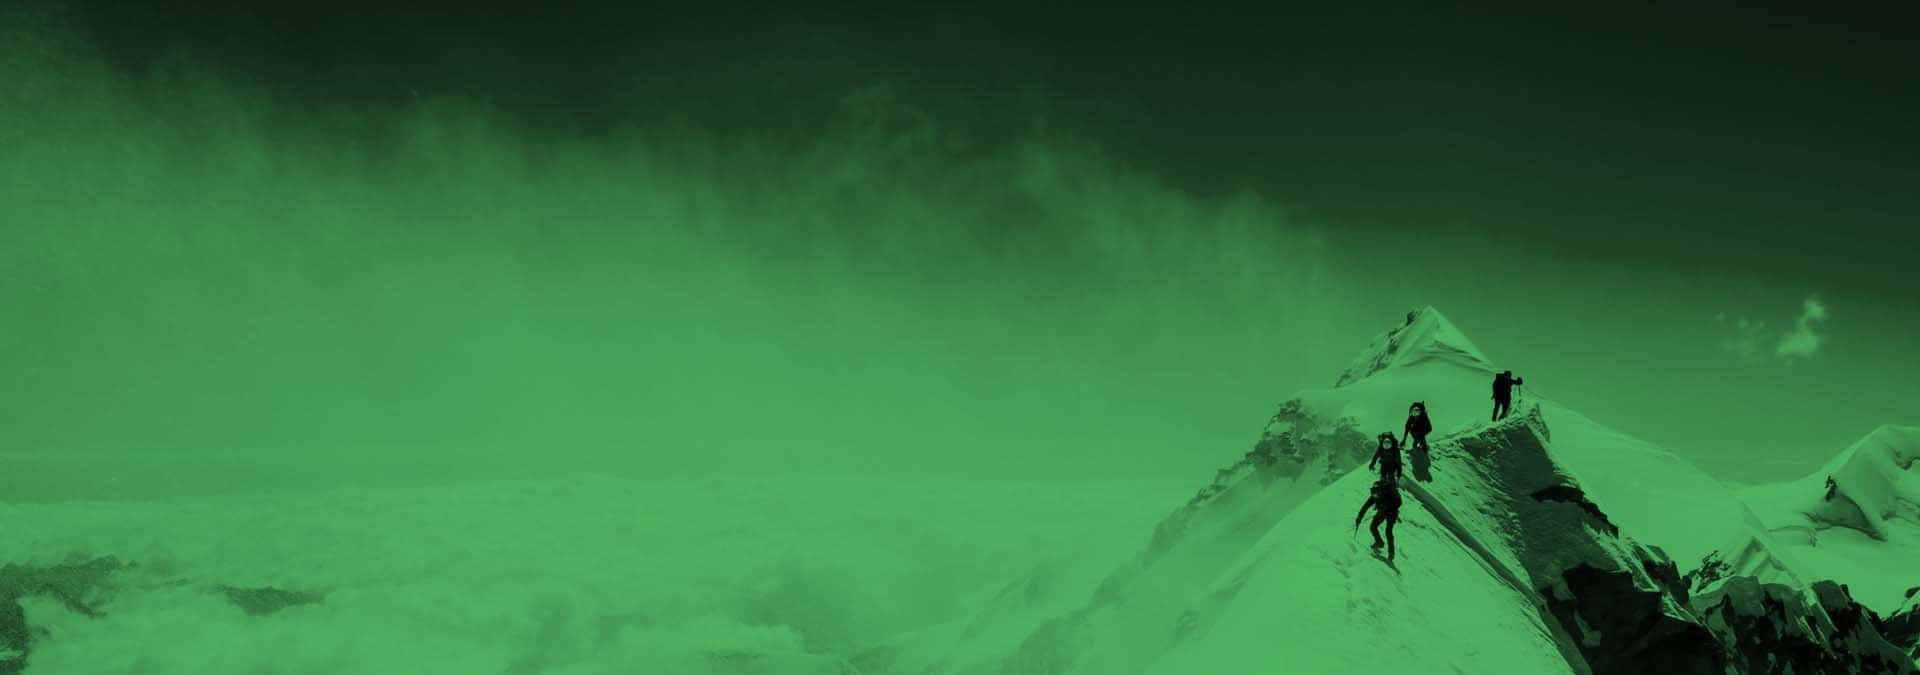 snow-covered mountain with climbers near top with green overlay on image